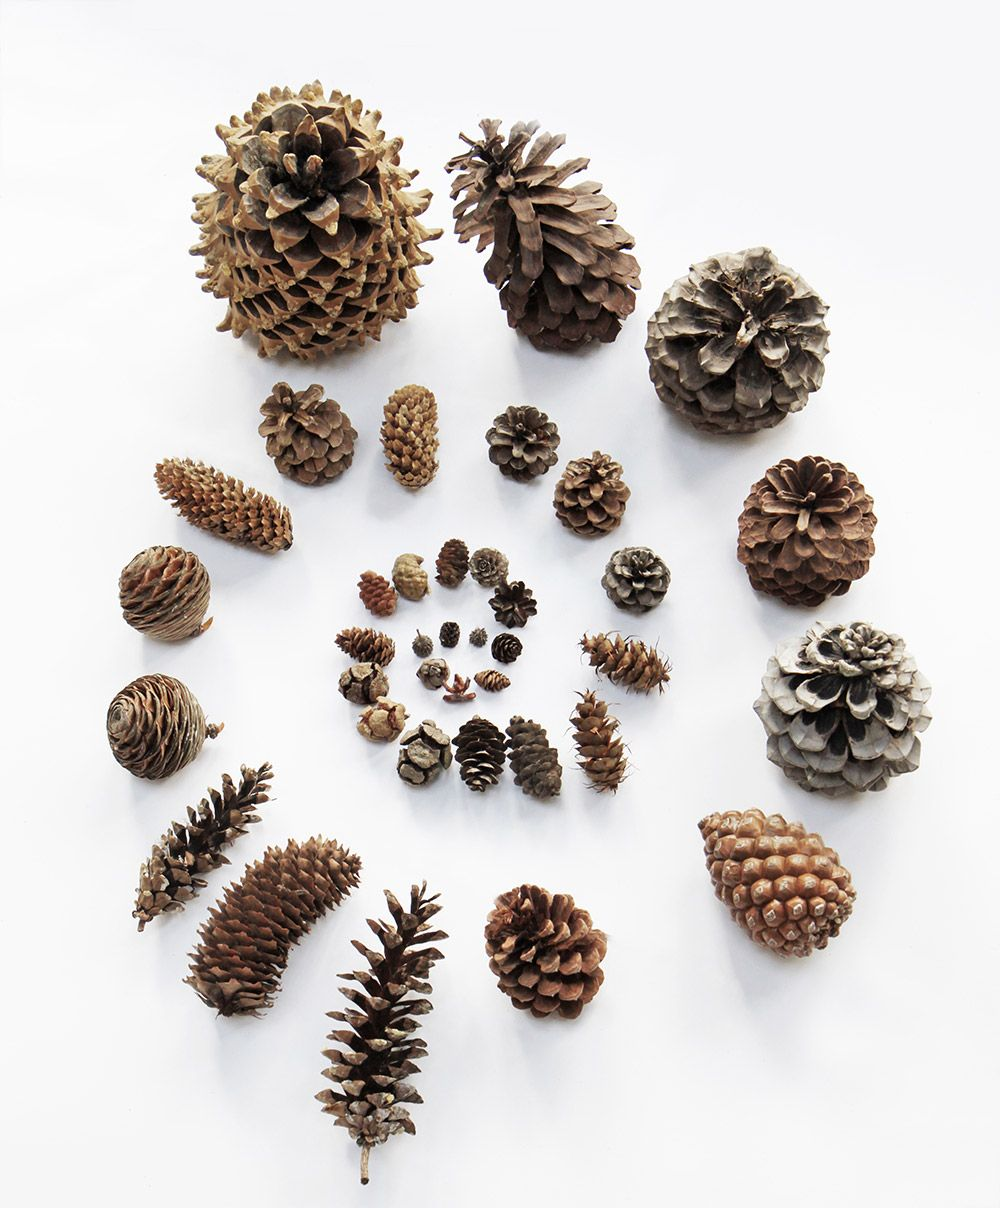 Pine cone galaxy collection includes cones from for Long pine cones